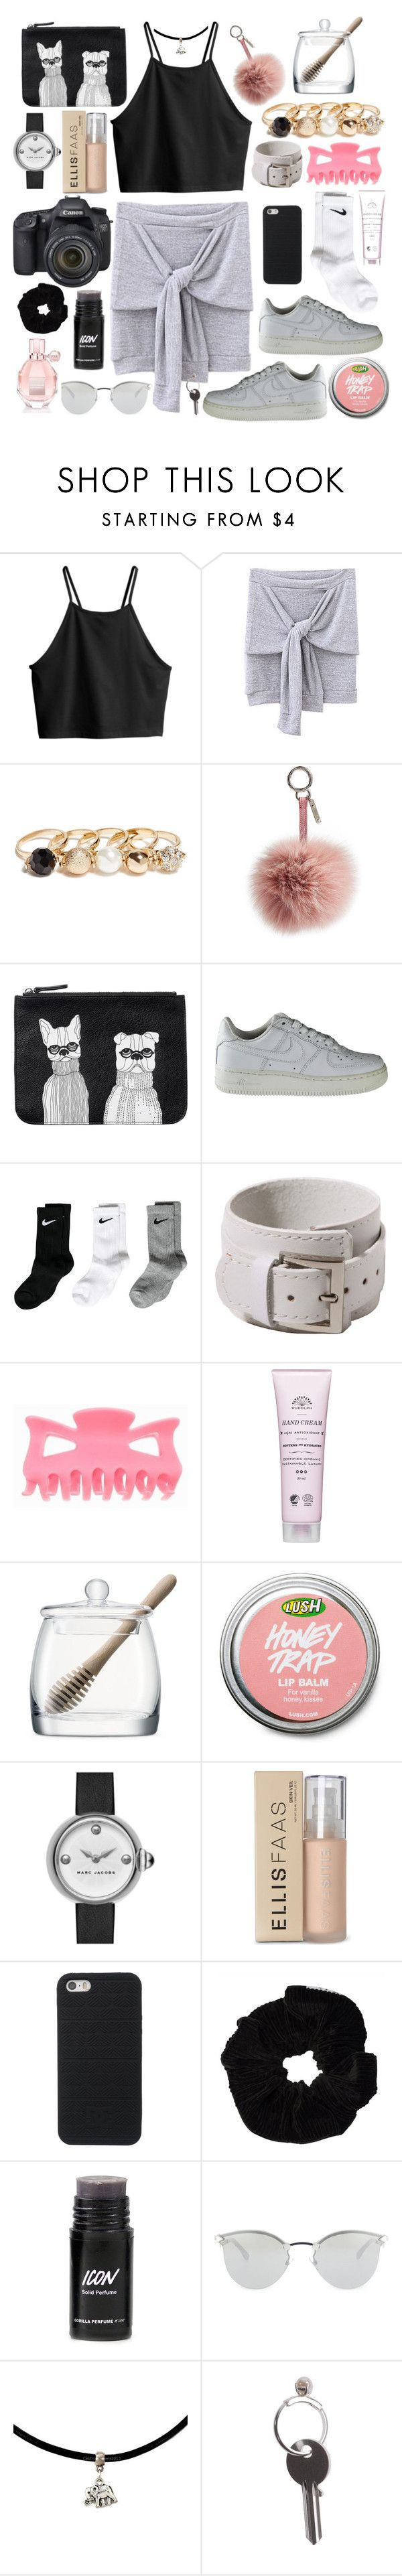 """Plush"" by swanniboo on Polyvore featuring H&M, GUESS, Fendi, Monki, NIKE, LSA International, Marc by Marc Jacobs, Ellis Faas, Eos and Maison Margiela"